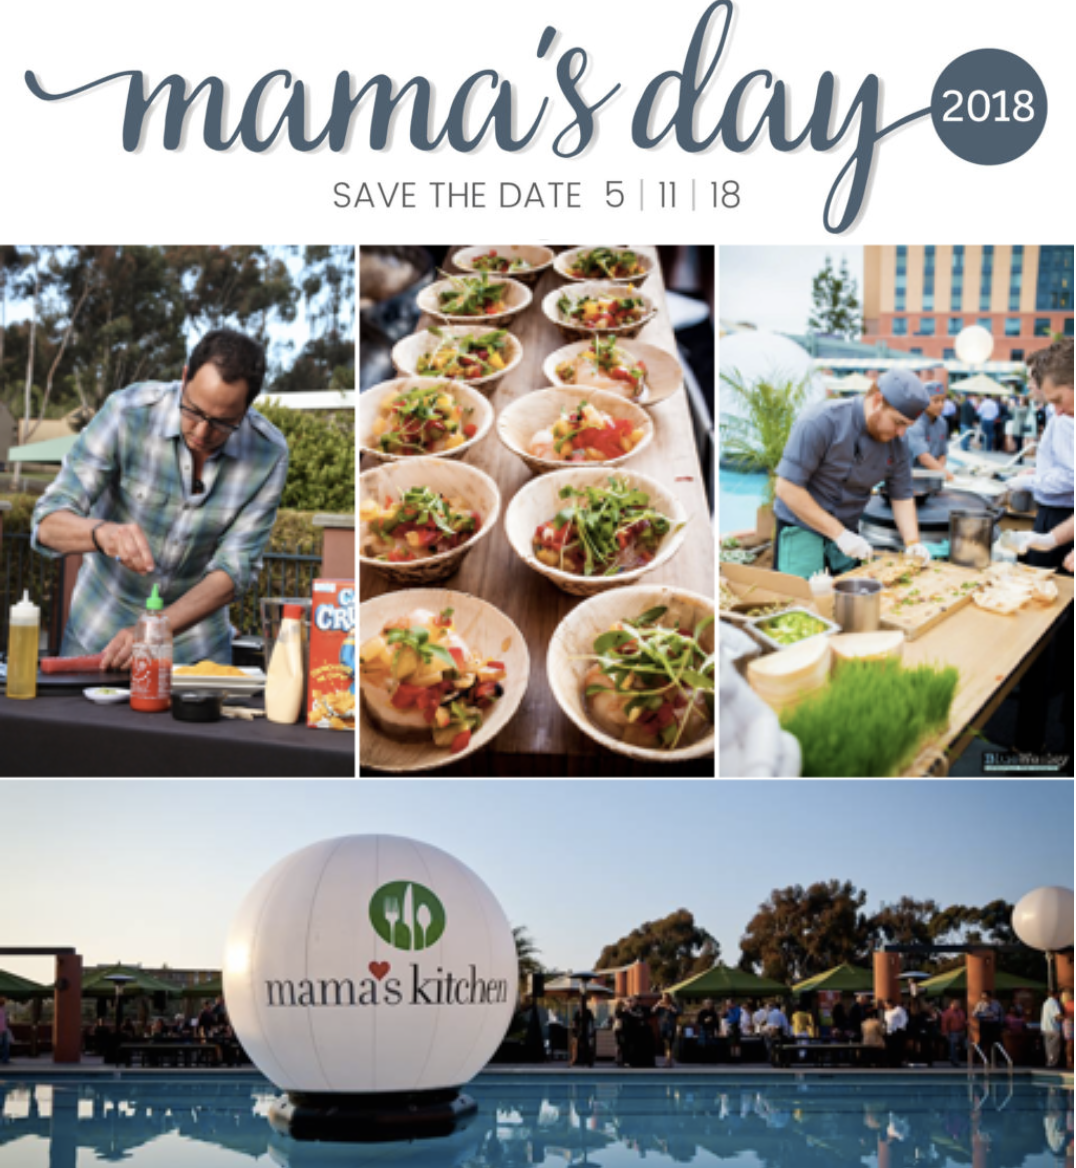 Don't Miss Mama's Day 2018 On Friday, May 11!